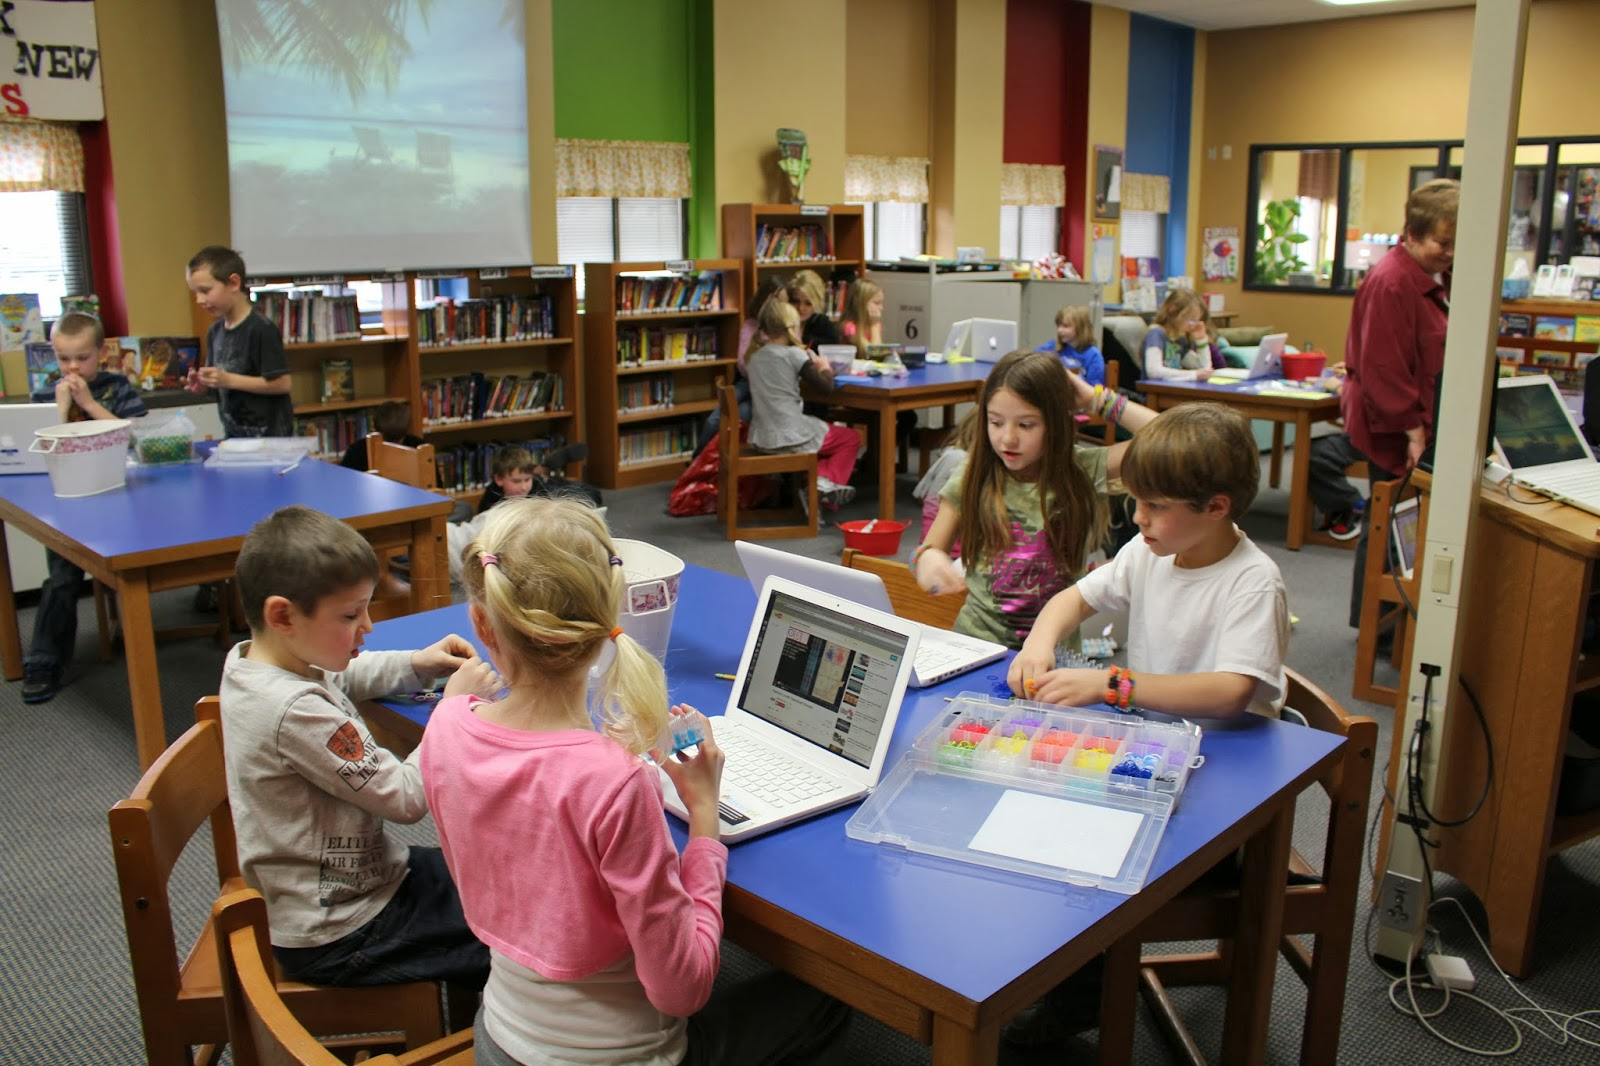 schools for creative writing Newpages newpagescom is news, information, and guides to literary magazines, independent publishers, creative writing programs, alternative periodicals, indie bookstores, writing.